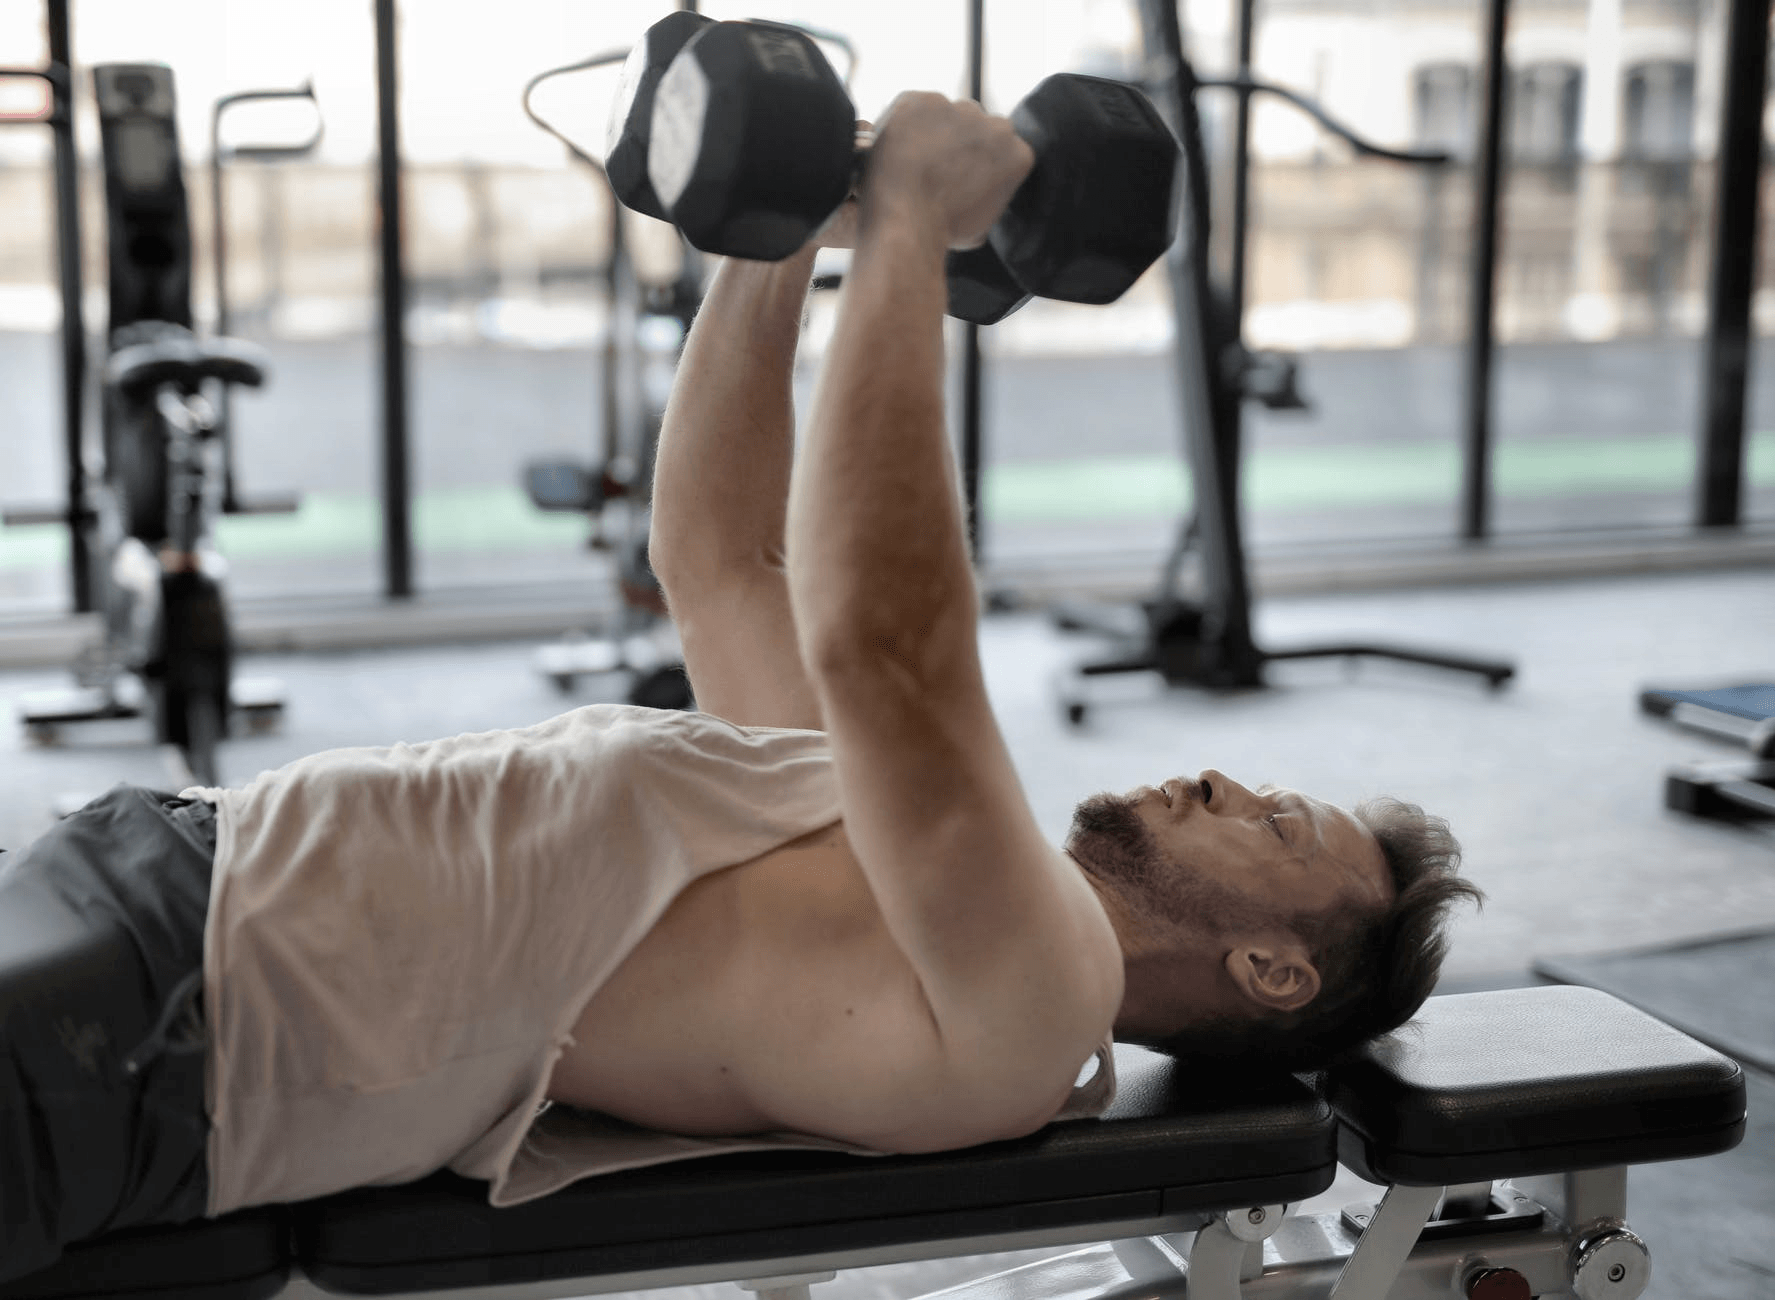 Man training with dumbbells